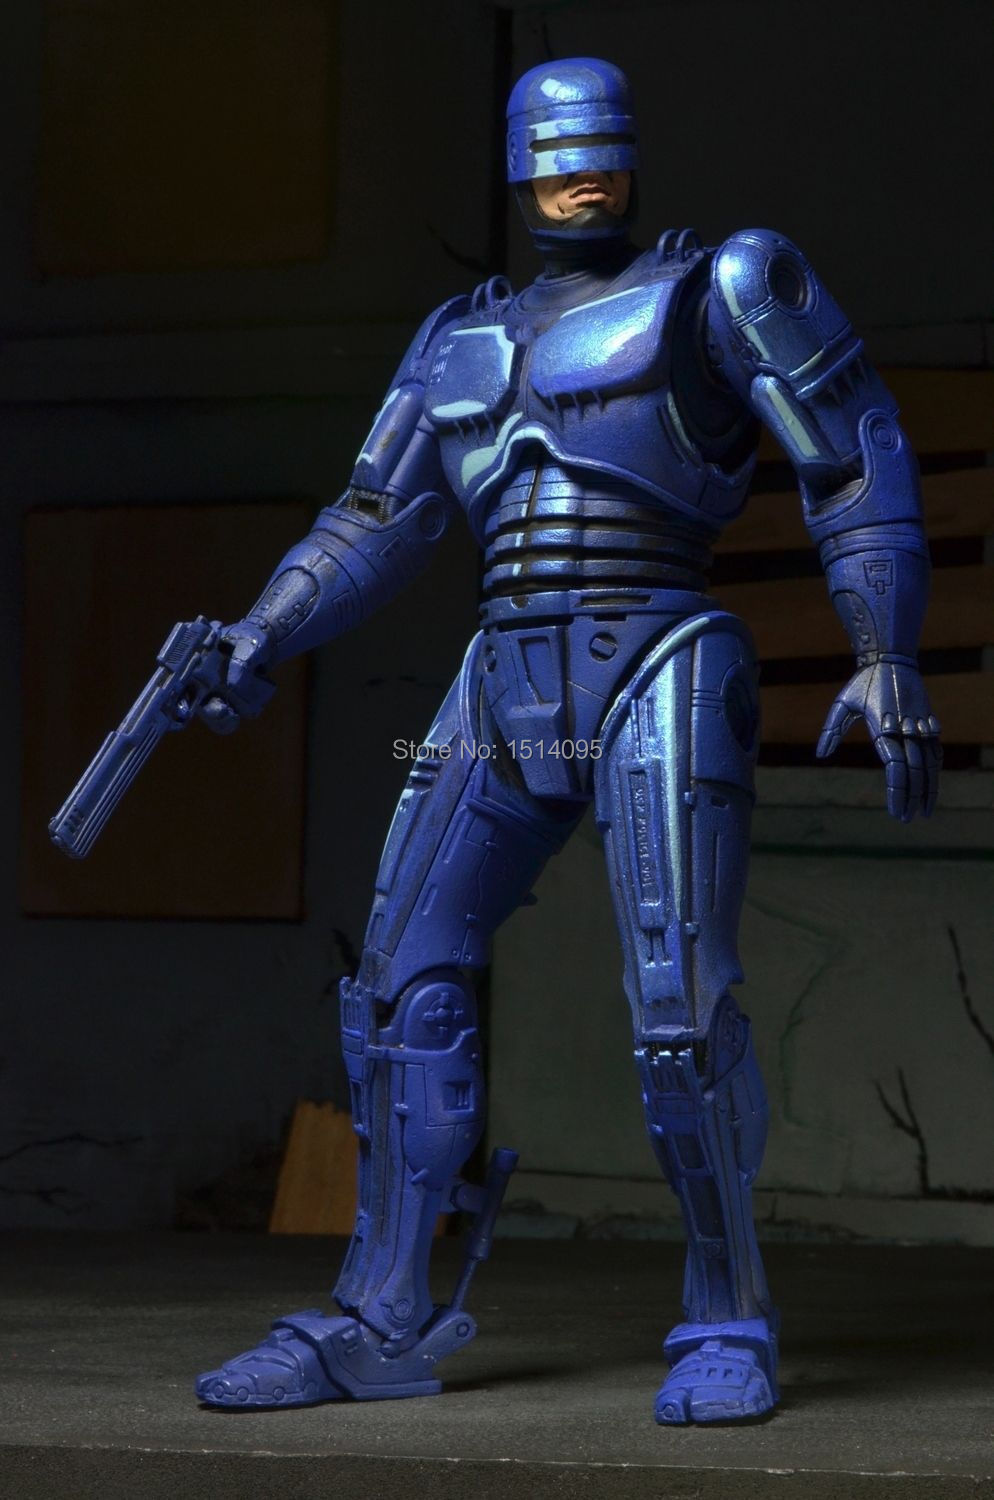 NECA 7 Robocop Classic 1987 Video Game Appearance Action Figure Collectible Model Toy WF066<br><br>Aliexpress